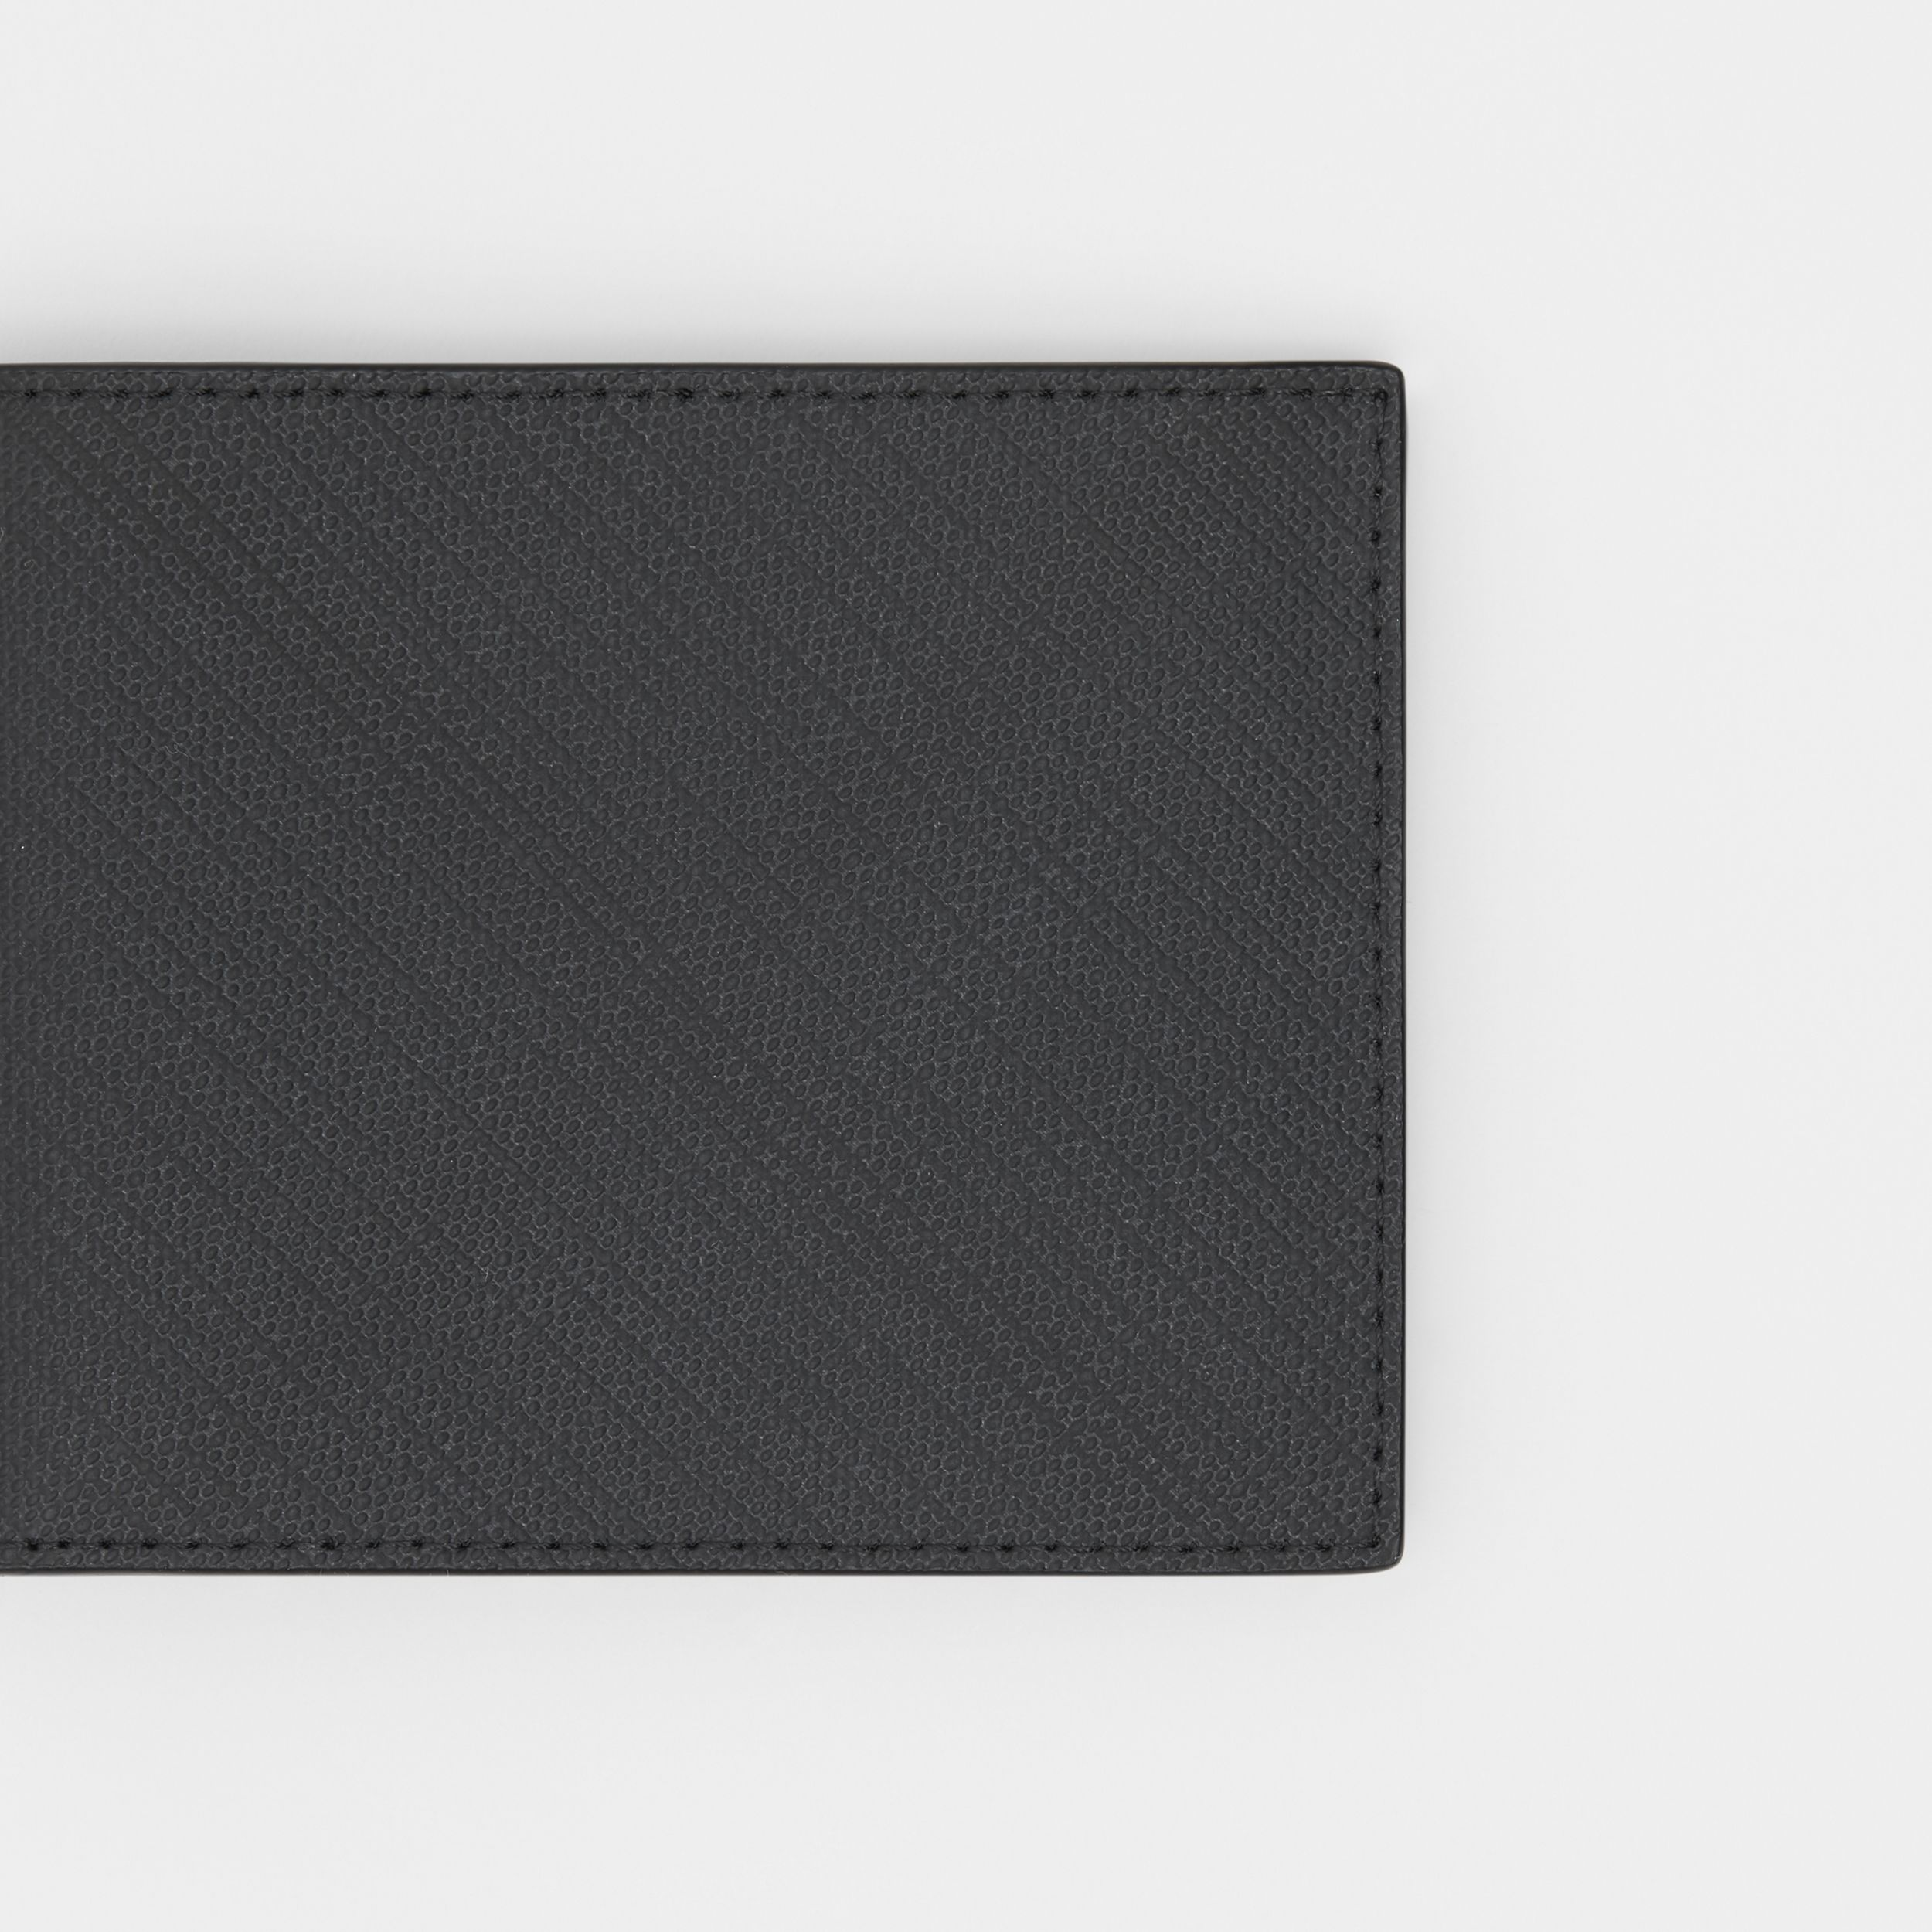 London Check and Leather Bifold Wallet in Dark Charcoal - Men | Burberry Australia - 2